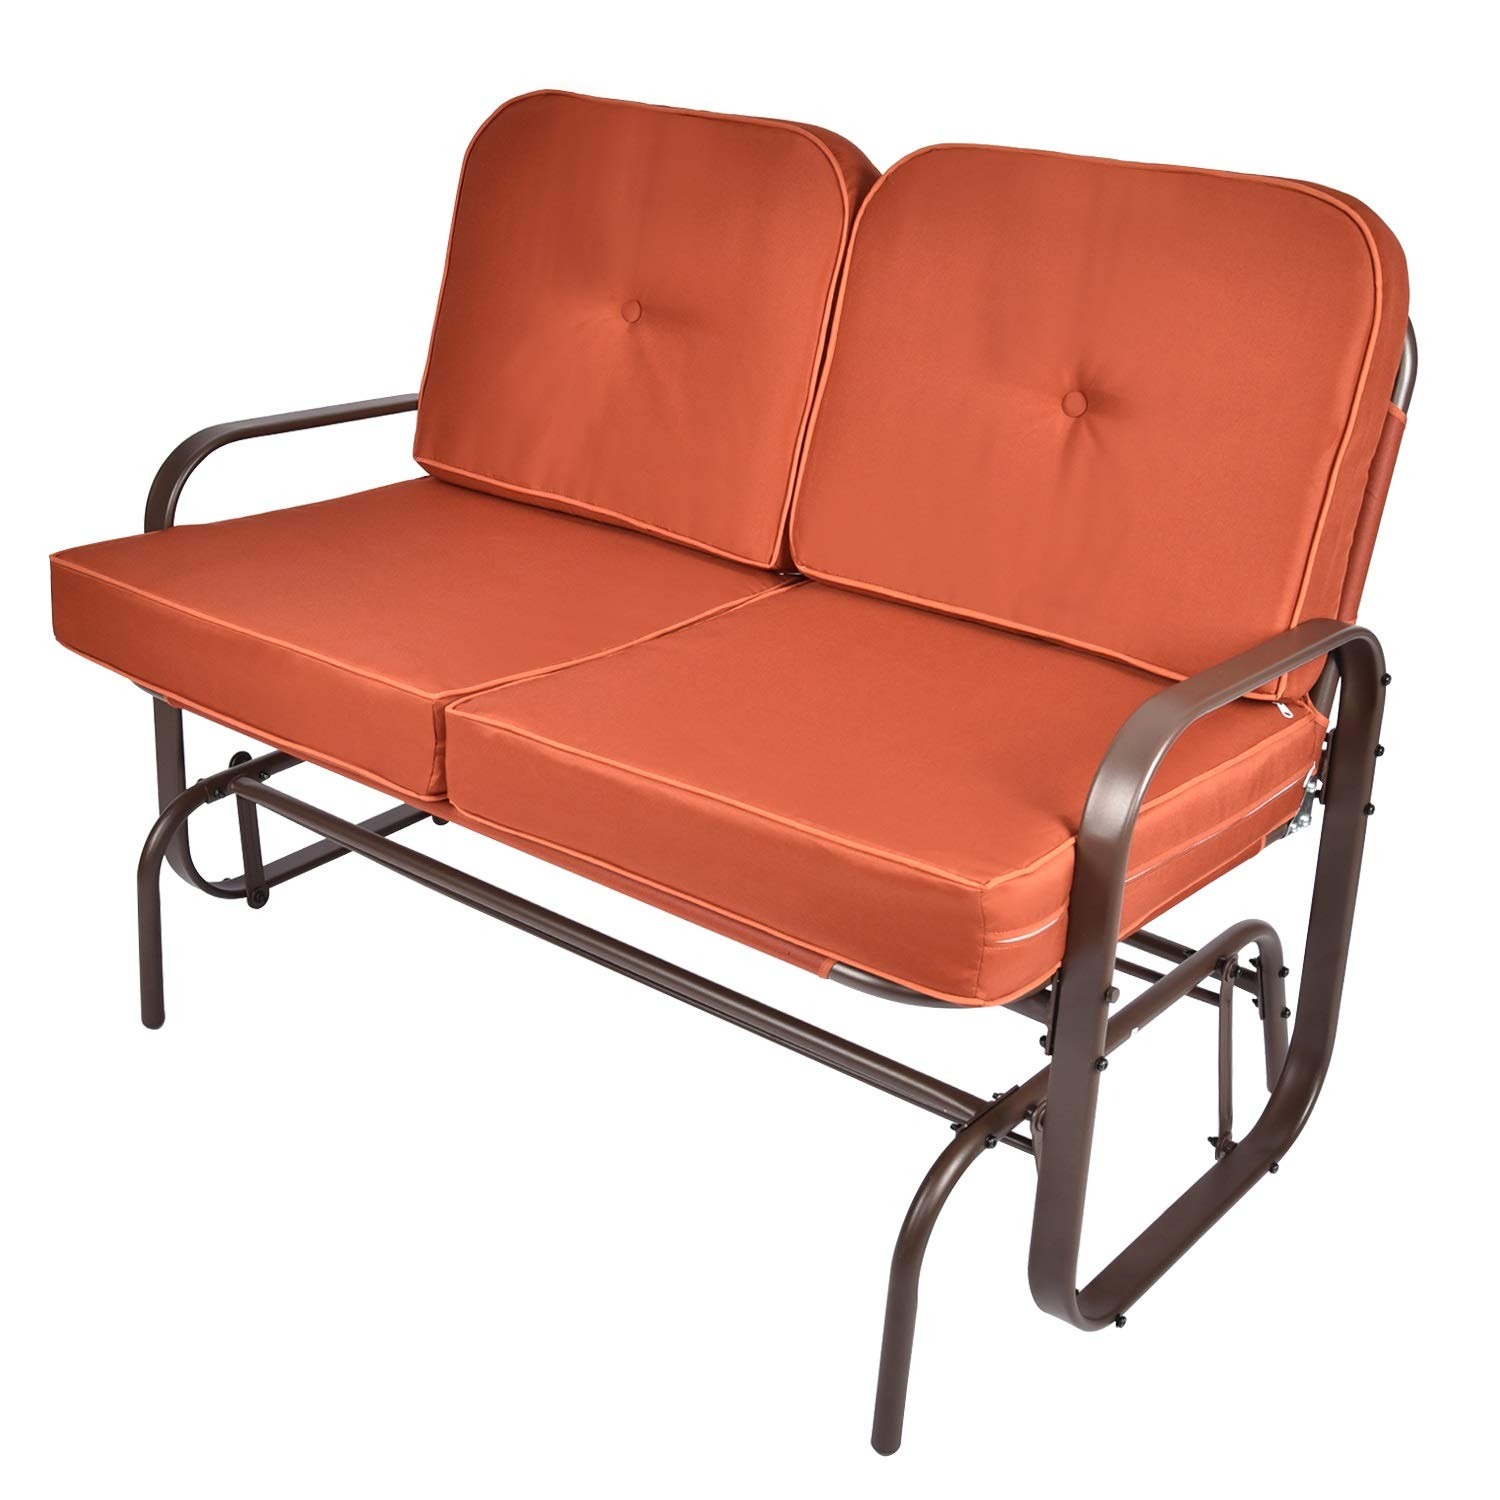 ELECWISH Outdoor Swing Glider Rocking Chair Patio Bench for 2 Person, Garden Loveseat Seating Patio w/UV-Resistant Cushions (Orange) by ELECWISH